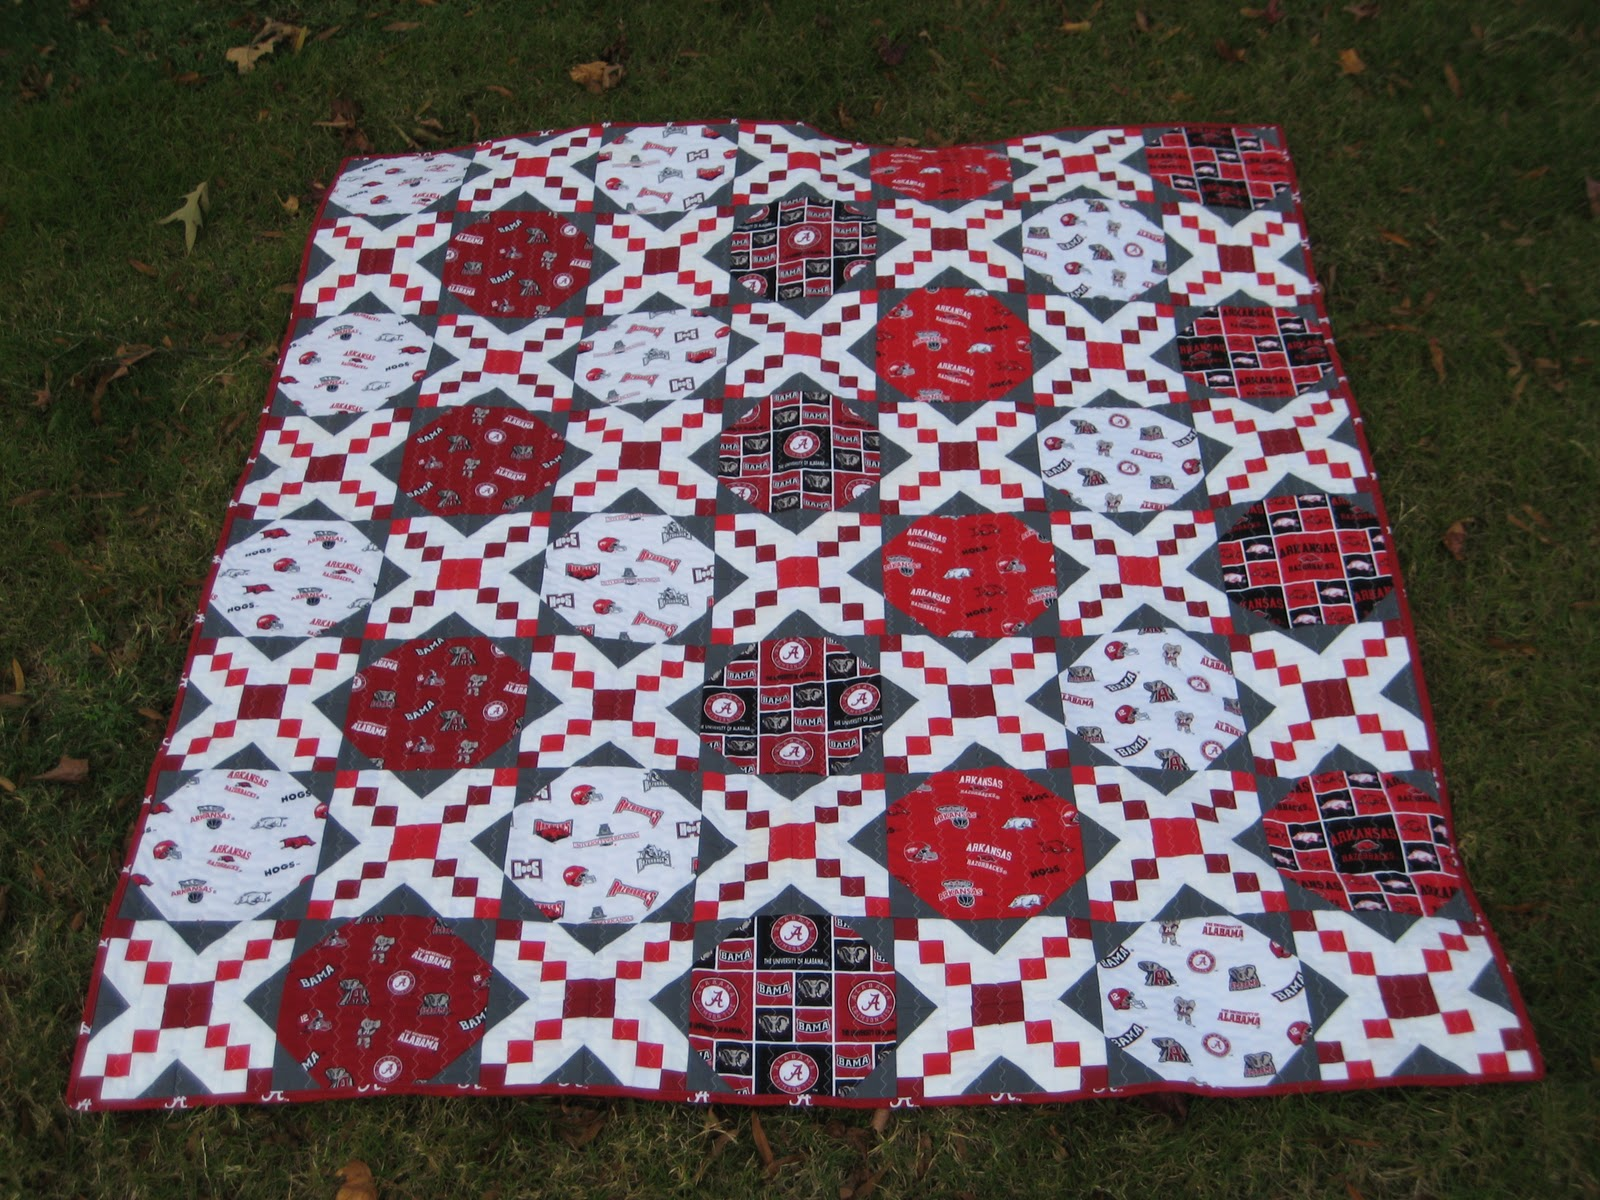 Alabama Football Quilt Pattern http://www.brittneyselbyquilting.com/2011/11/battle-of-sec-west-quilt.html